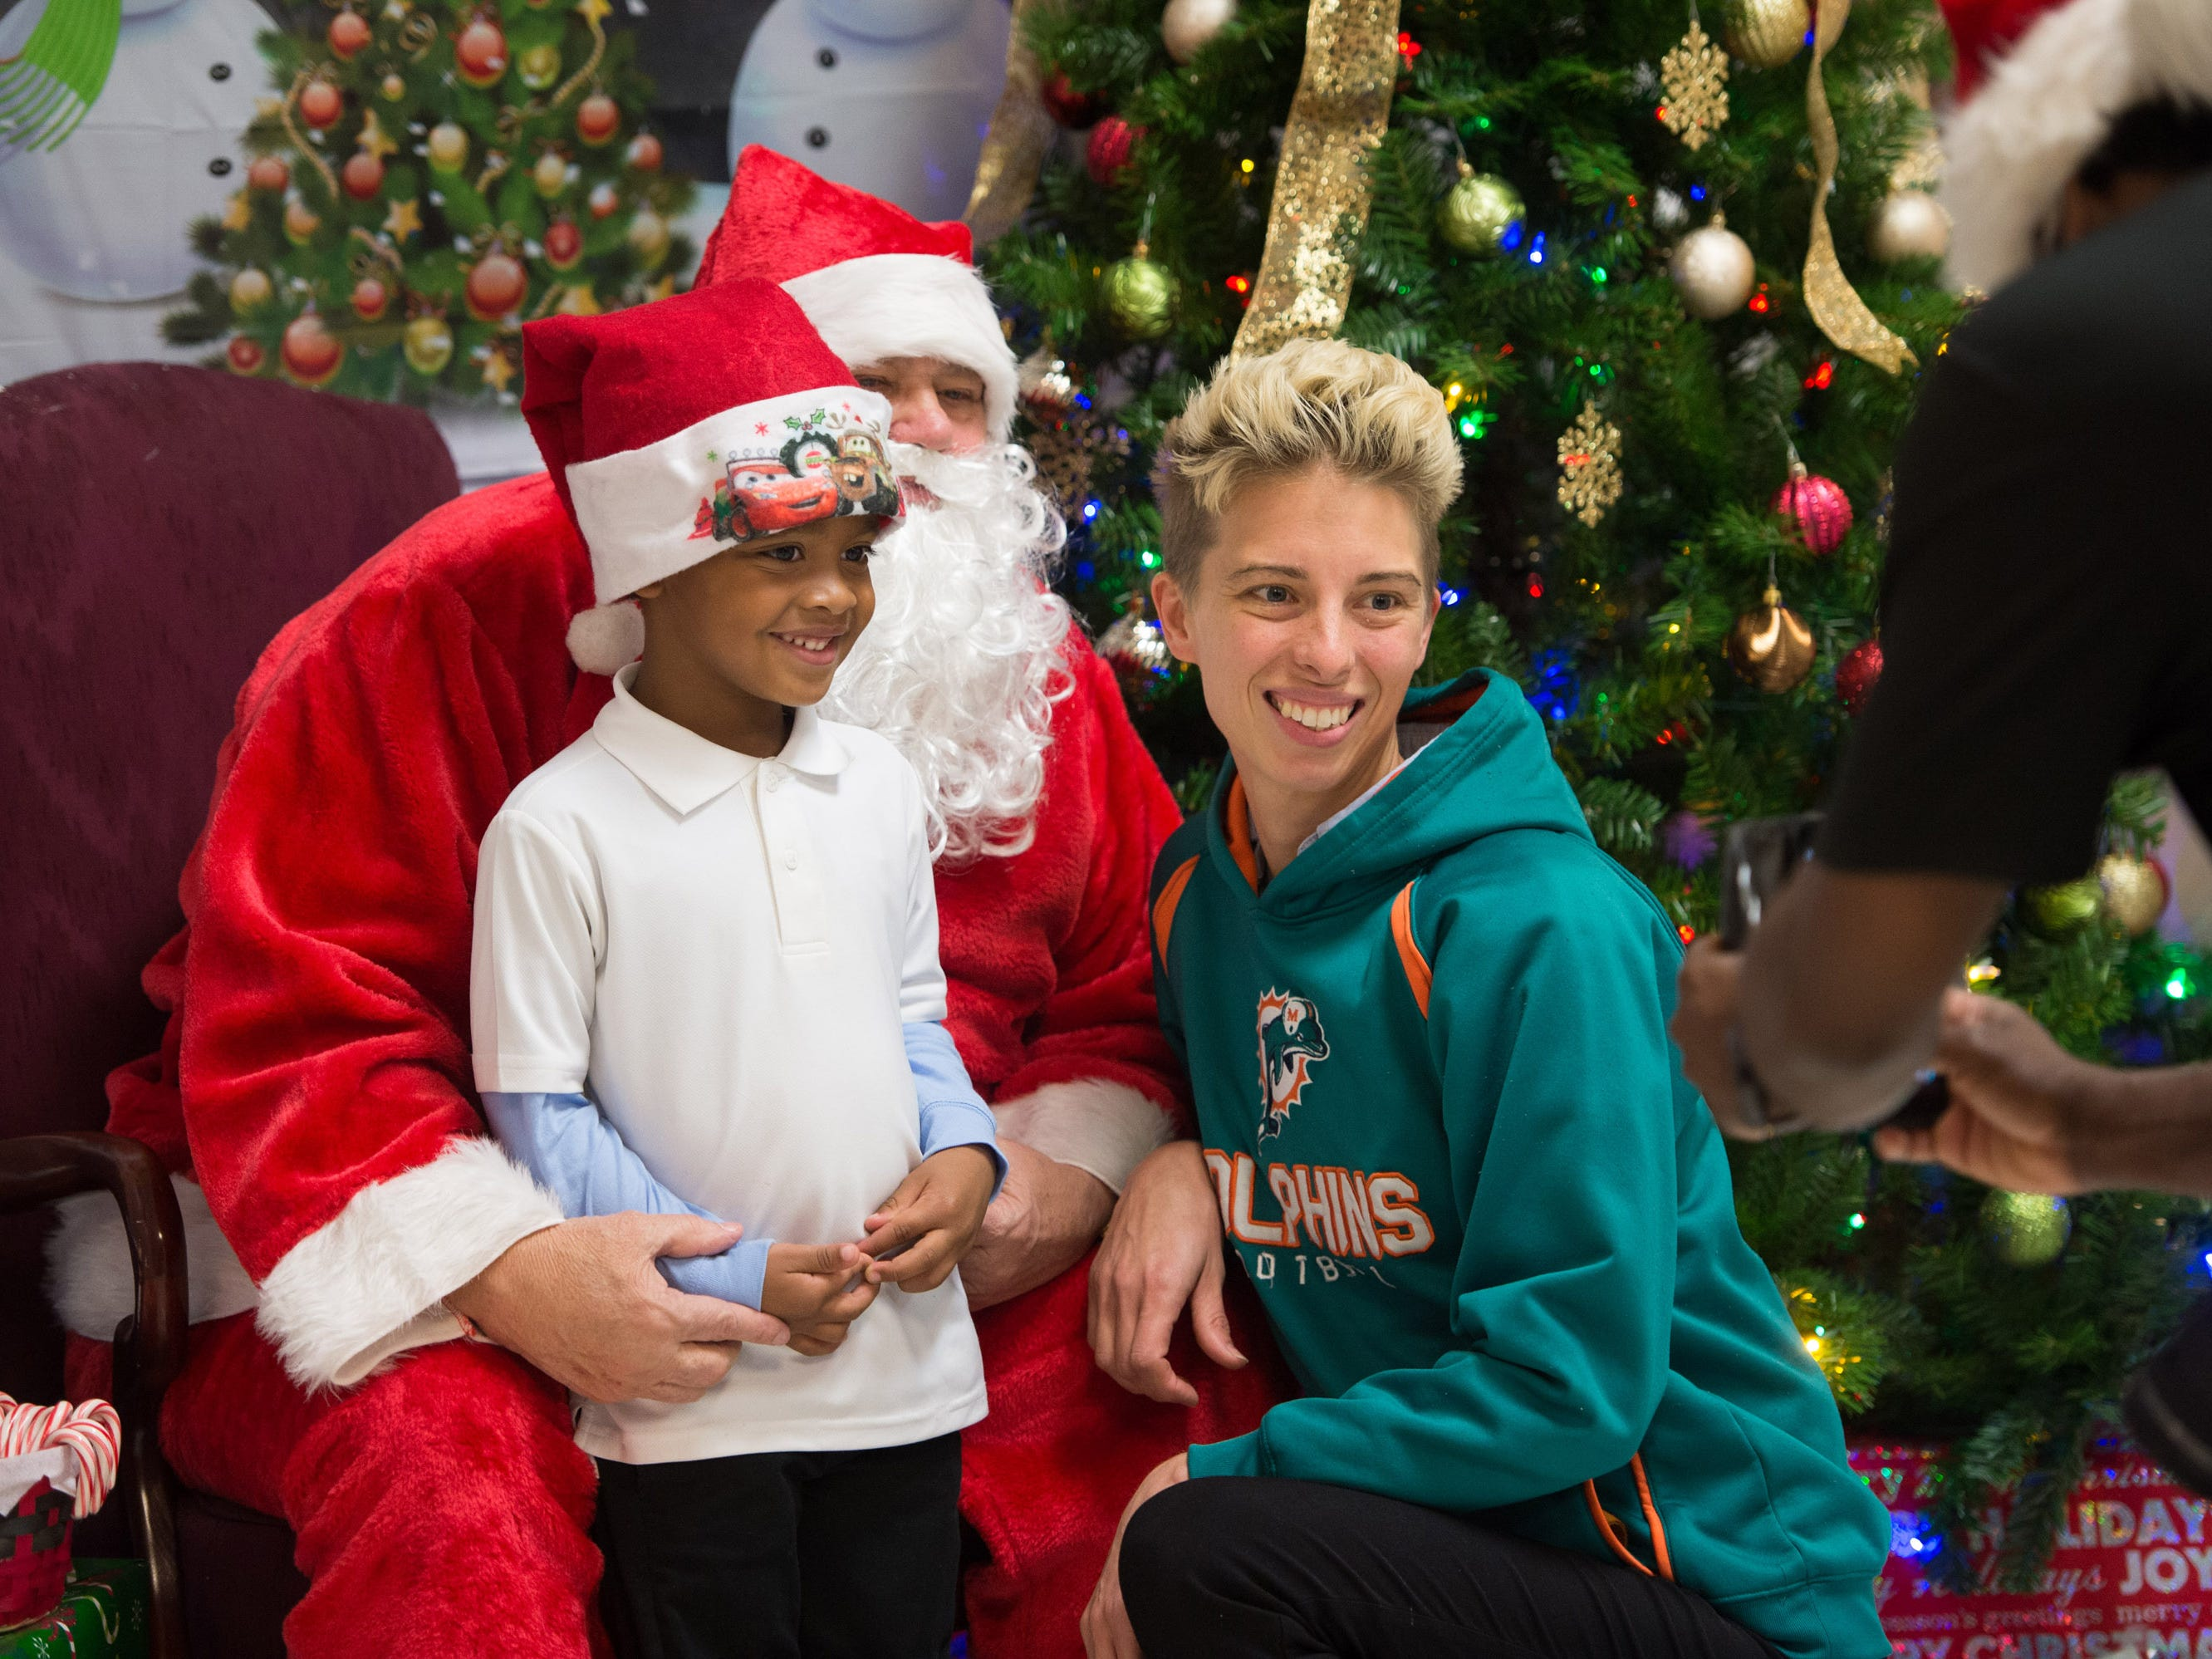 The Firehouse Youth Centre's Breakfast with Santa fundraiser event was held at the Firehouse Youth Centre on Friday, November 30, 2018 in Port St. Lucie.